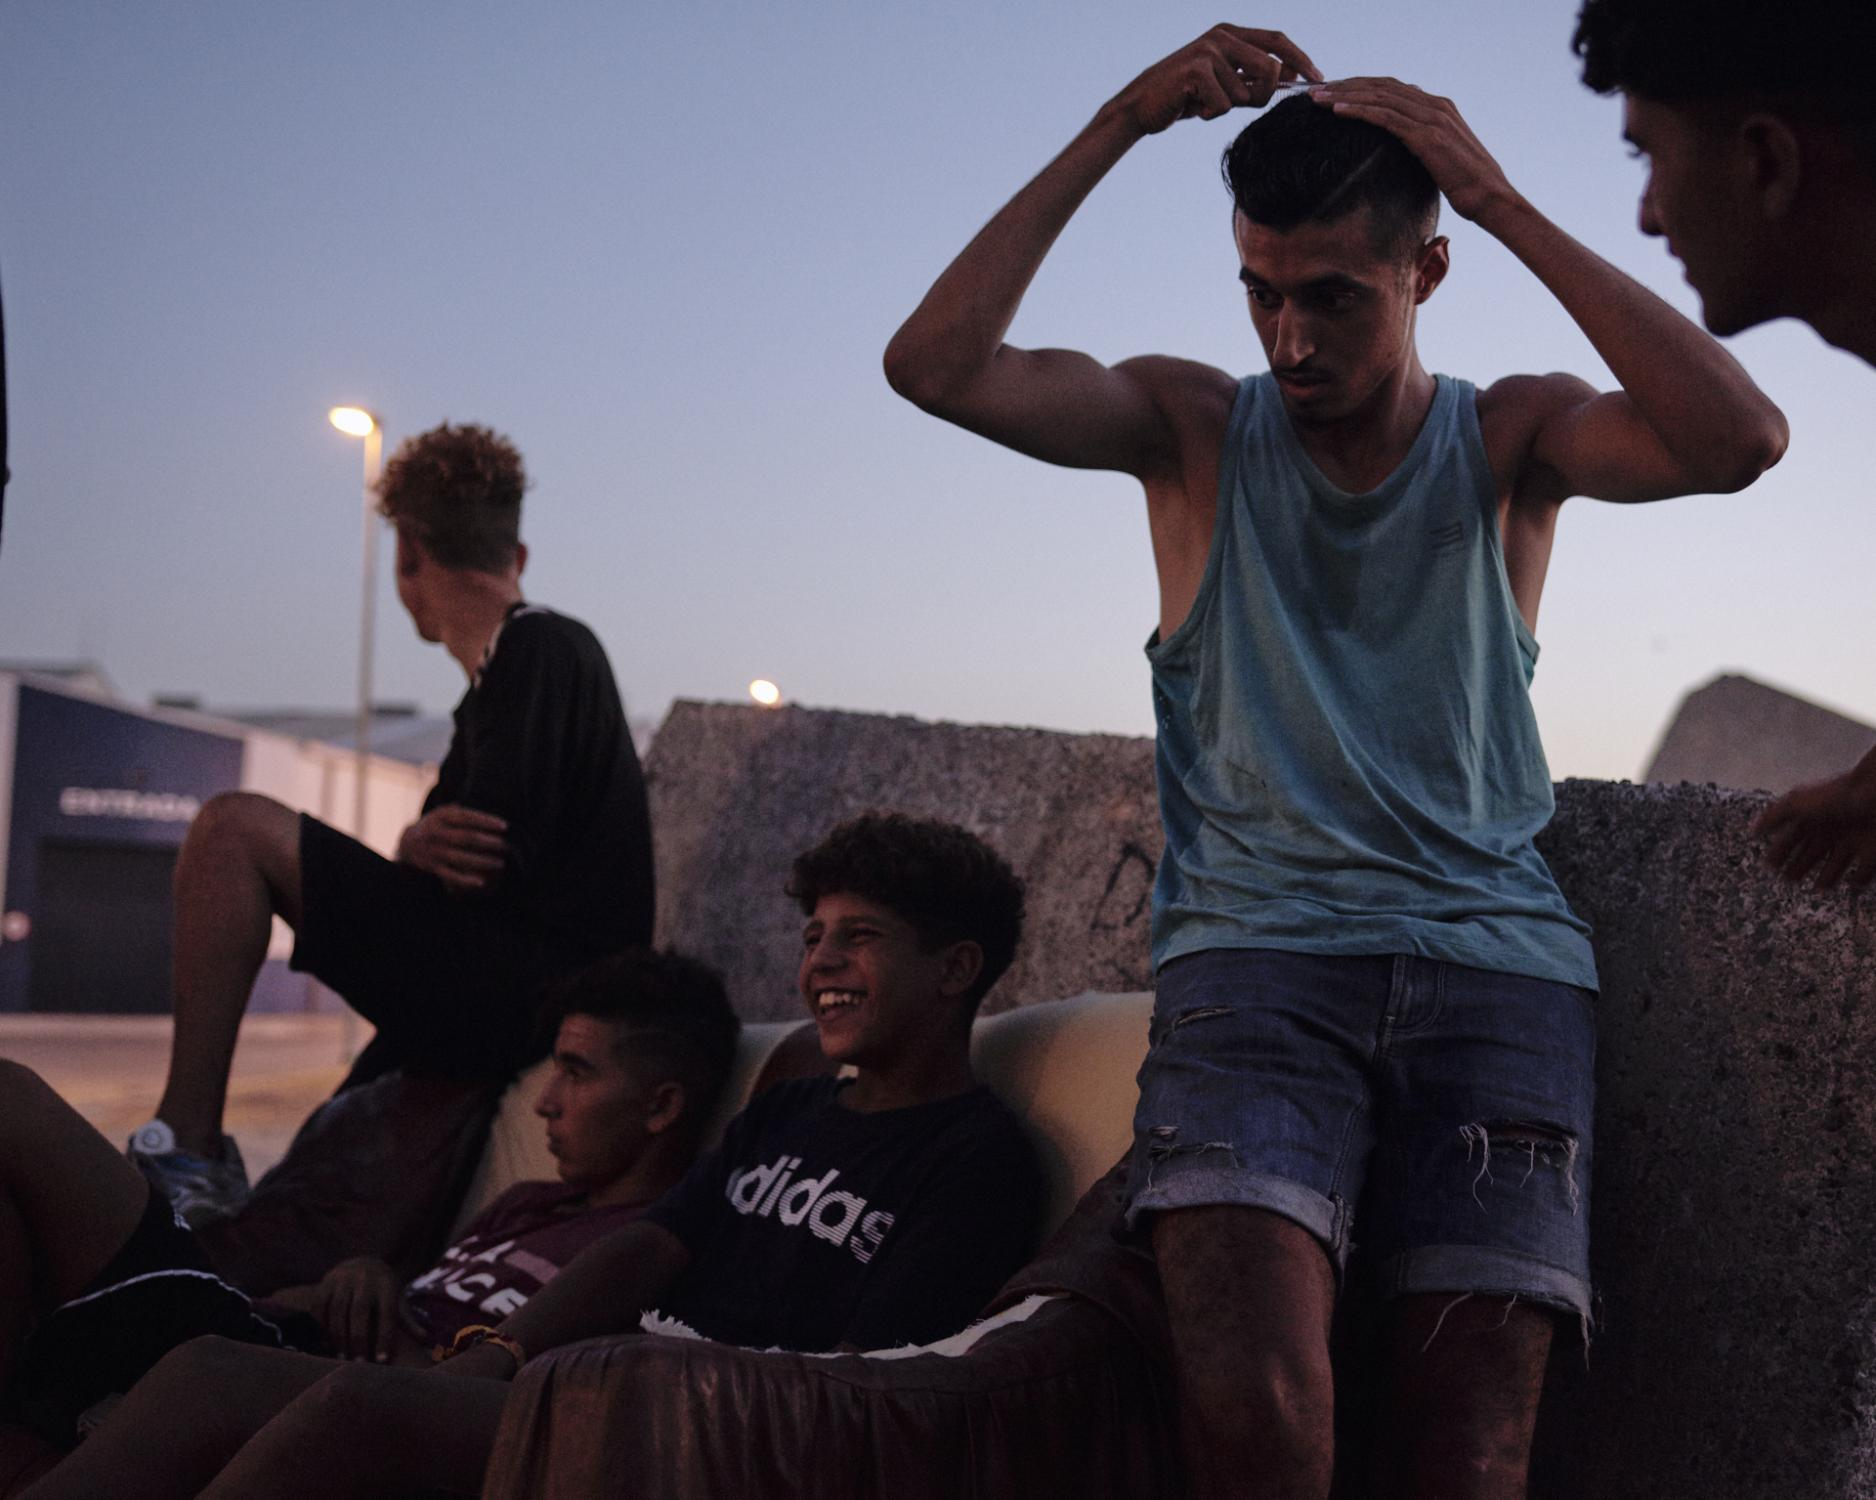 A group of MENA (Menores no Acompañados or Unaccompanied Minors), awaits the rest of their friends before the night comes. Kids are dispersed during the day over the town of Ceuta, begging money or trying to get some gigs. Very occasionally, organizations look for these kids to see if they need medical assistance, food, or clothes. Ceuta, Spain, 2019.